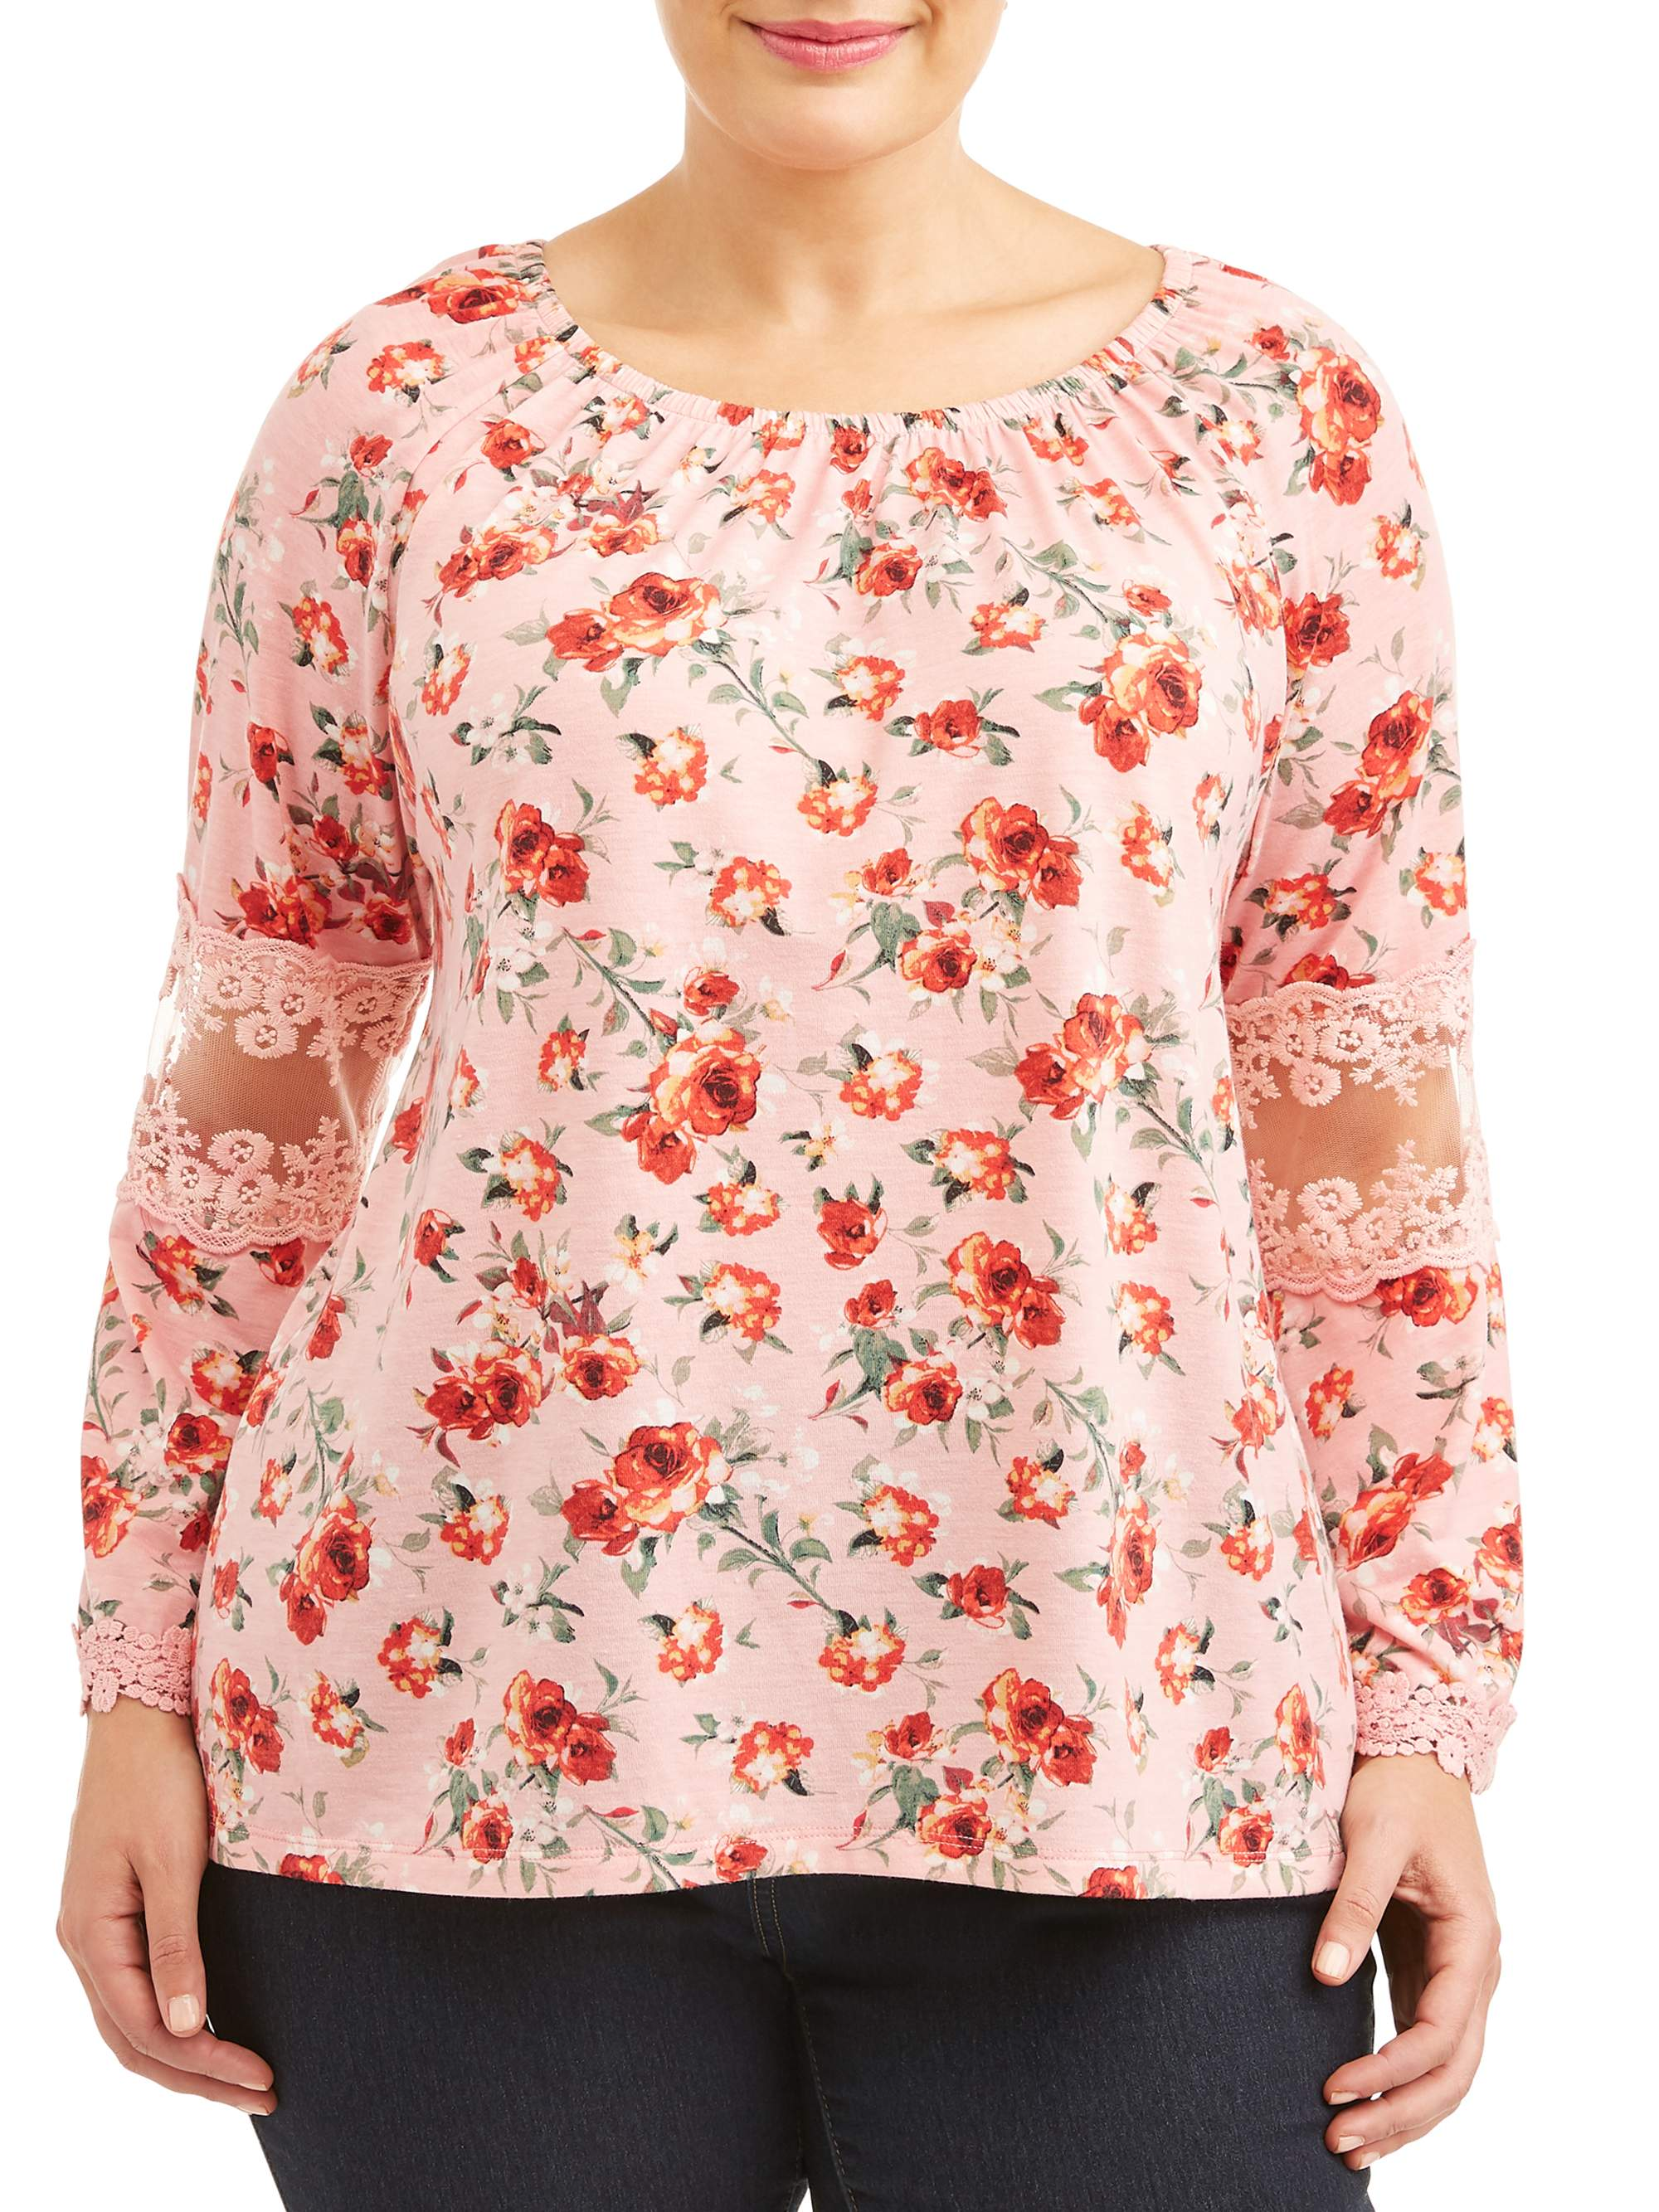 Women's Plus Size Printed Bell Sleeve Top